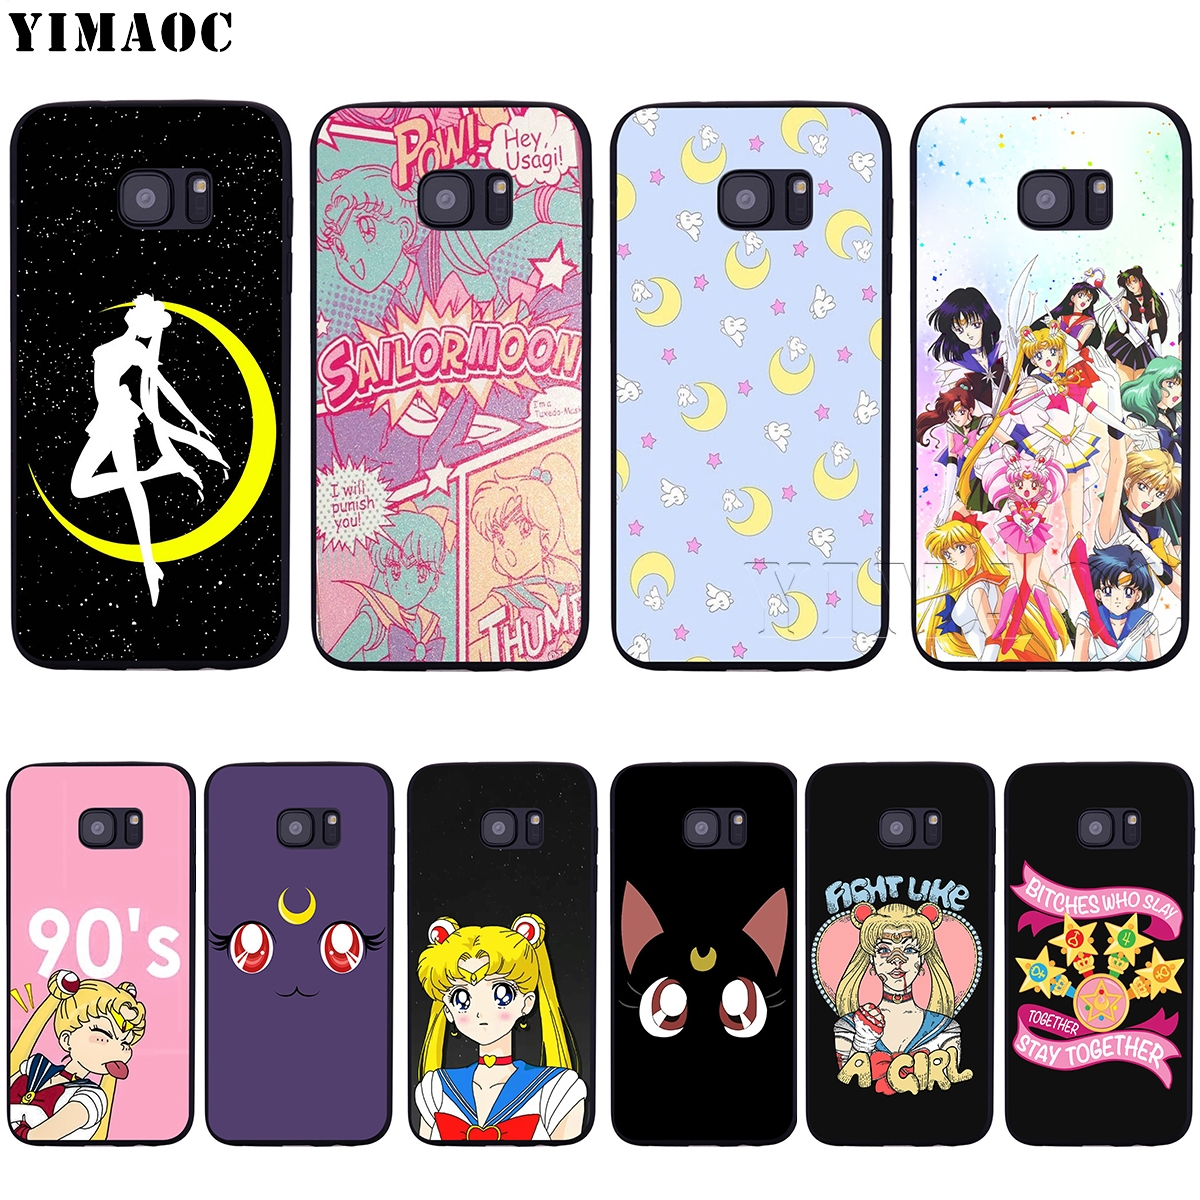 huge discount 4ebaa 97816 YIMAOC Sailor Moon Soft Silicone Case for Samsung Galaxy S6 S7 S10e Edge S8  S9 Plus A3 A5 A6 A7 A8 A9 J6 Note 8 9 2018